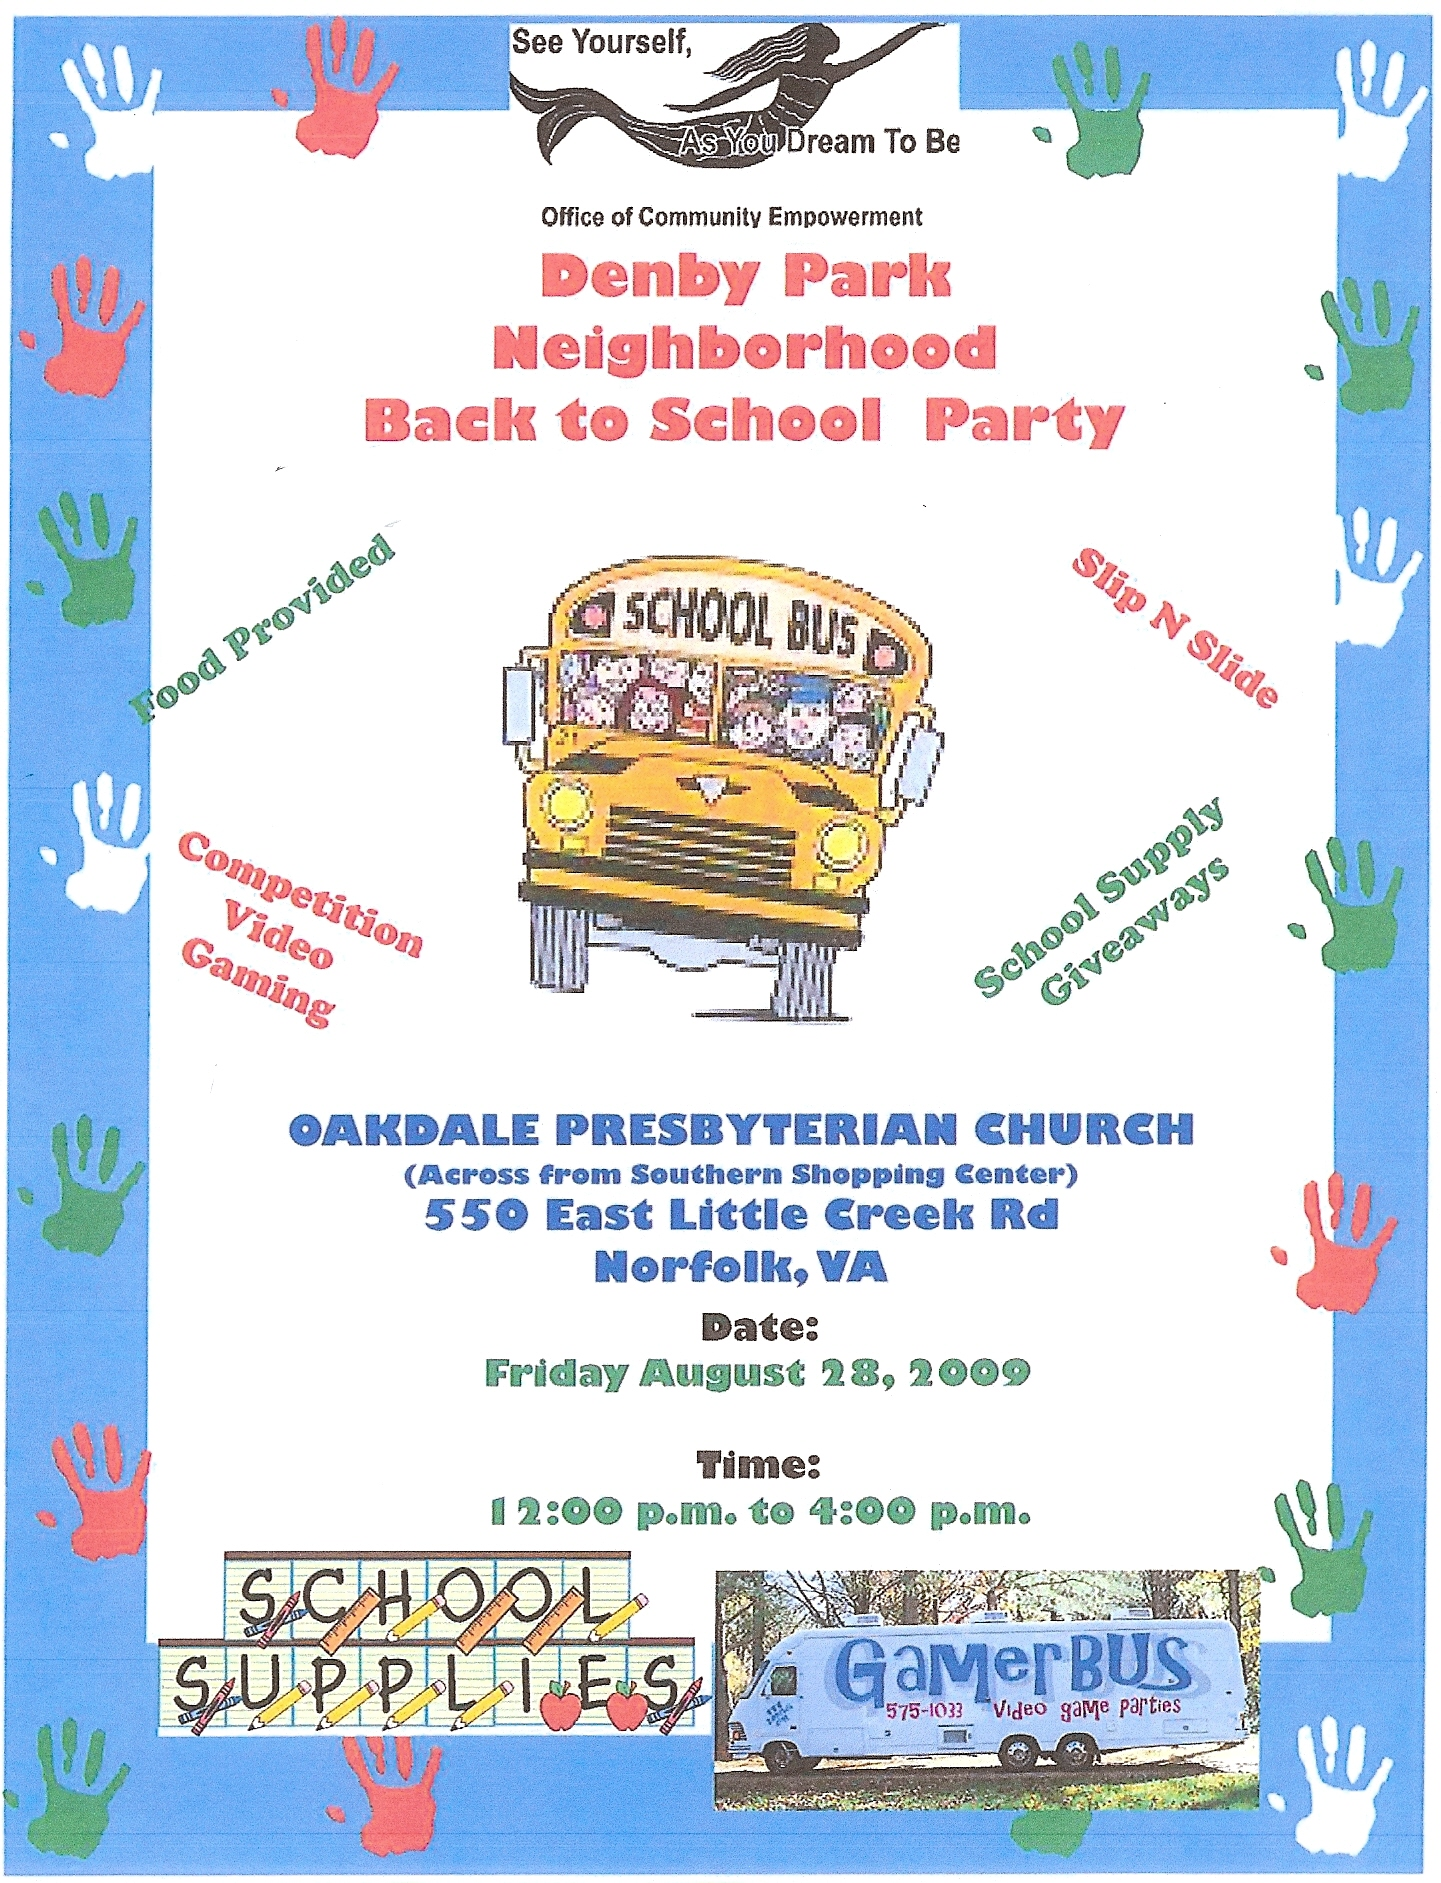 Denby Park Back to School Party